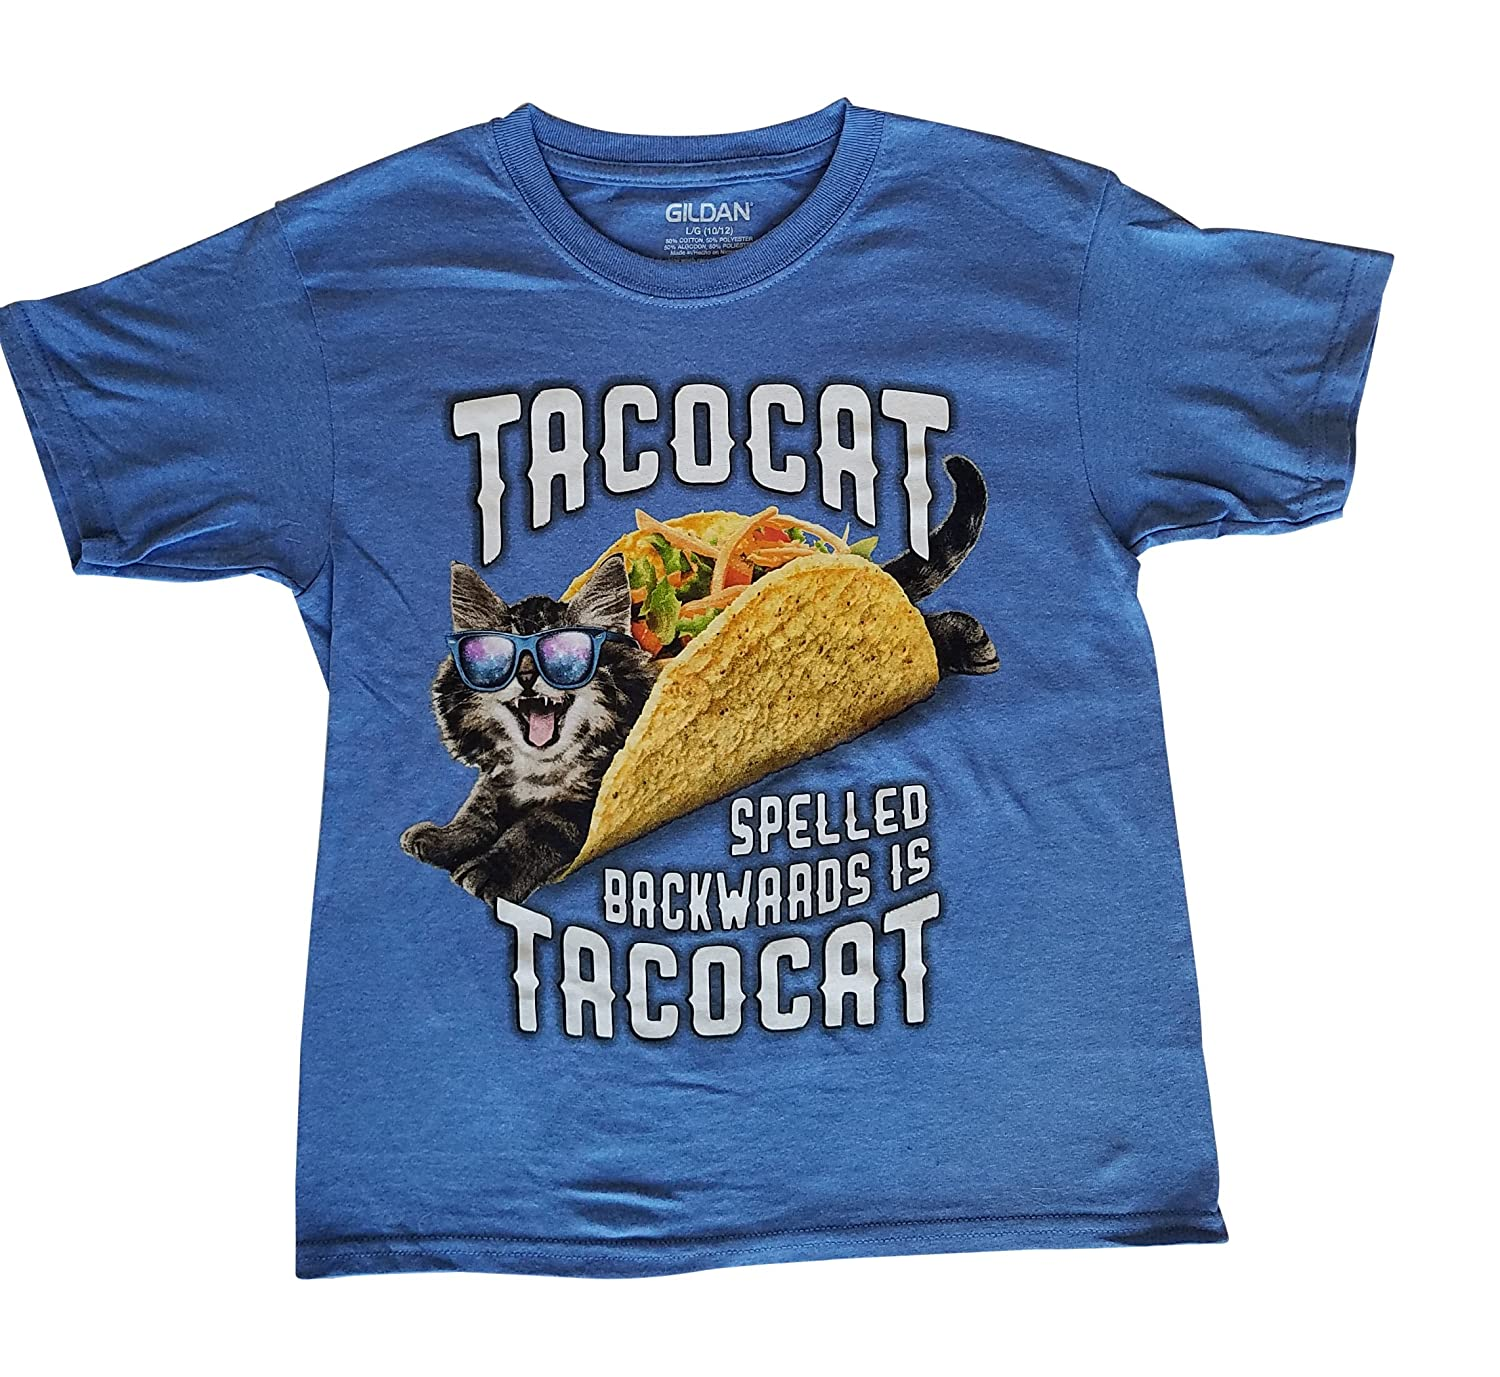 7f380eb5c Boys Shirt - Tacocat Spelled Backwards is Tacocat Funny graphics with a  cool Cat Wearing Sunglasses laying in a taco. Throw on some fresh lettuce  and ...